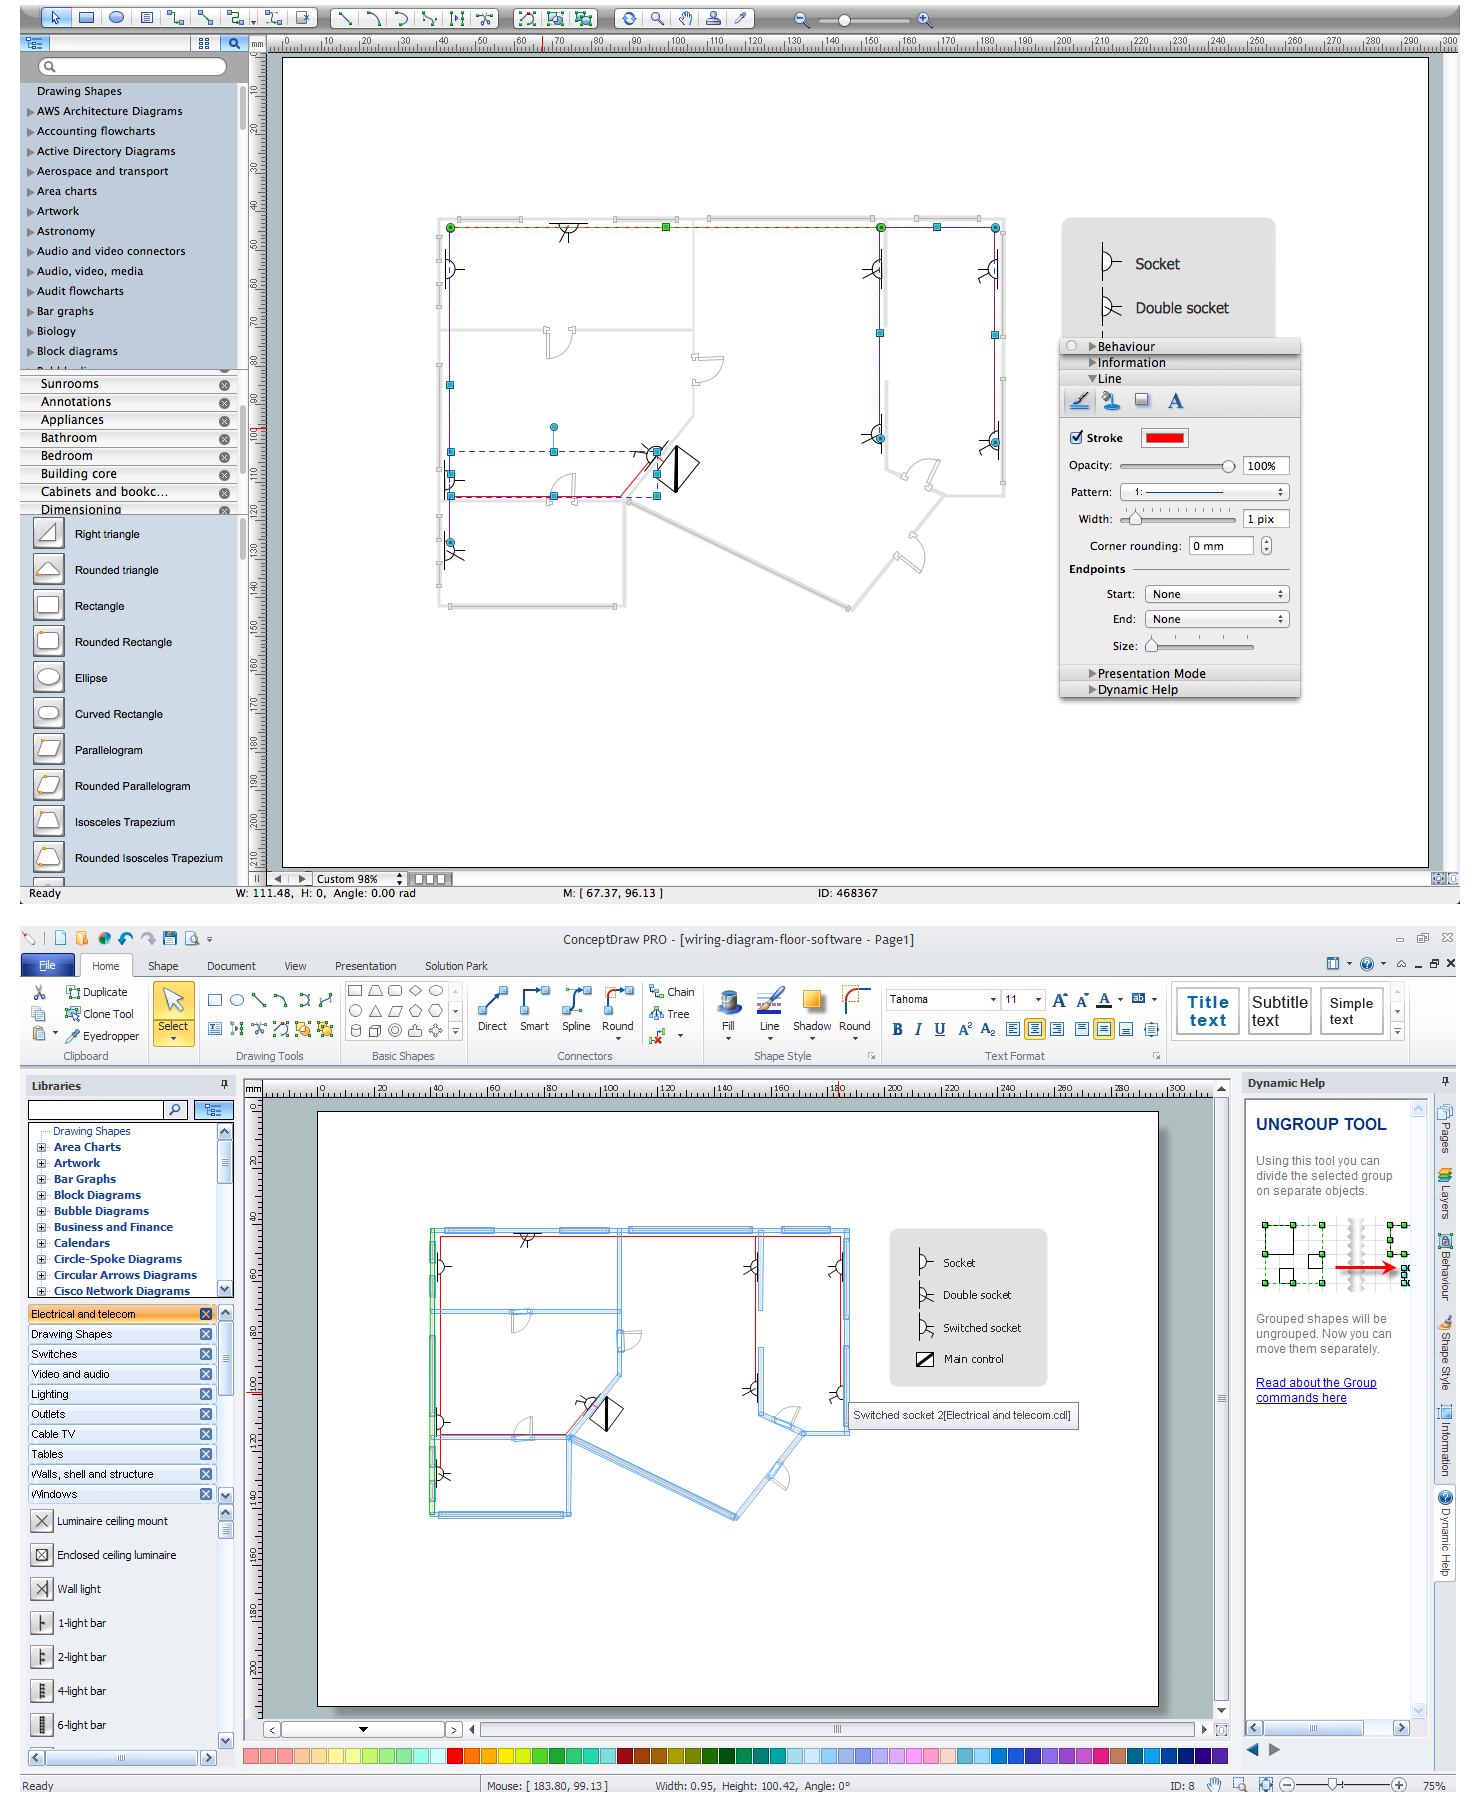 Wiring Diagram Floor Software - Wiring Diagram Maker